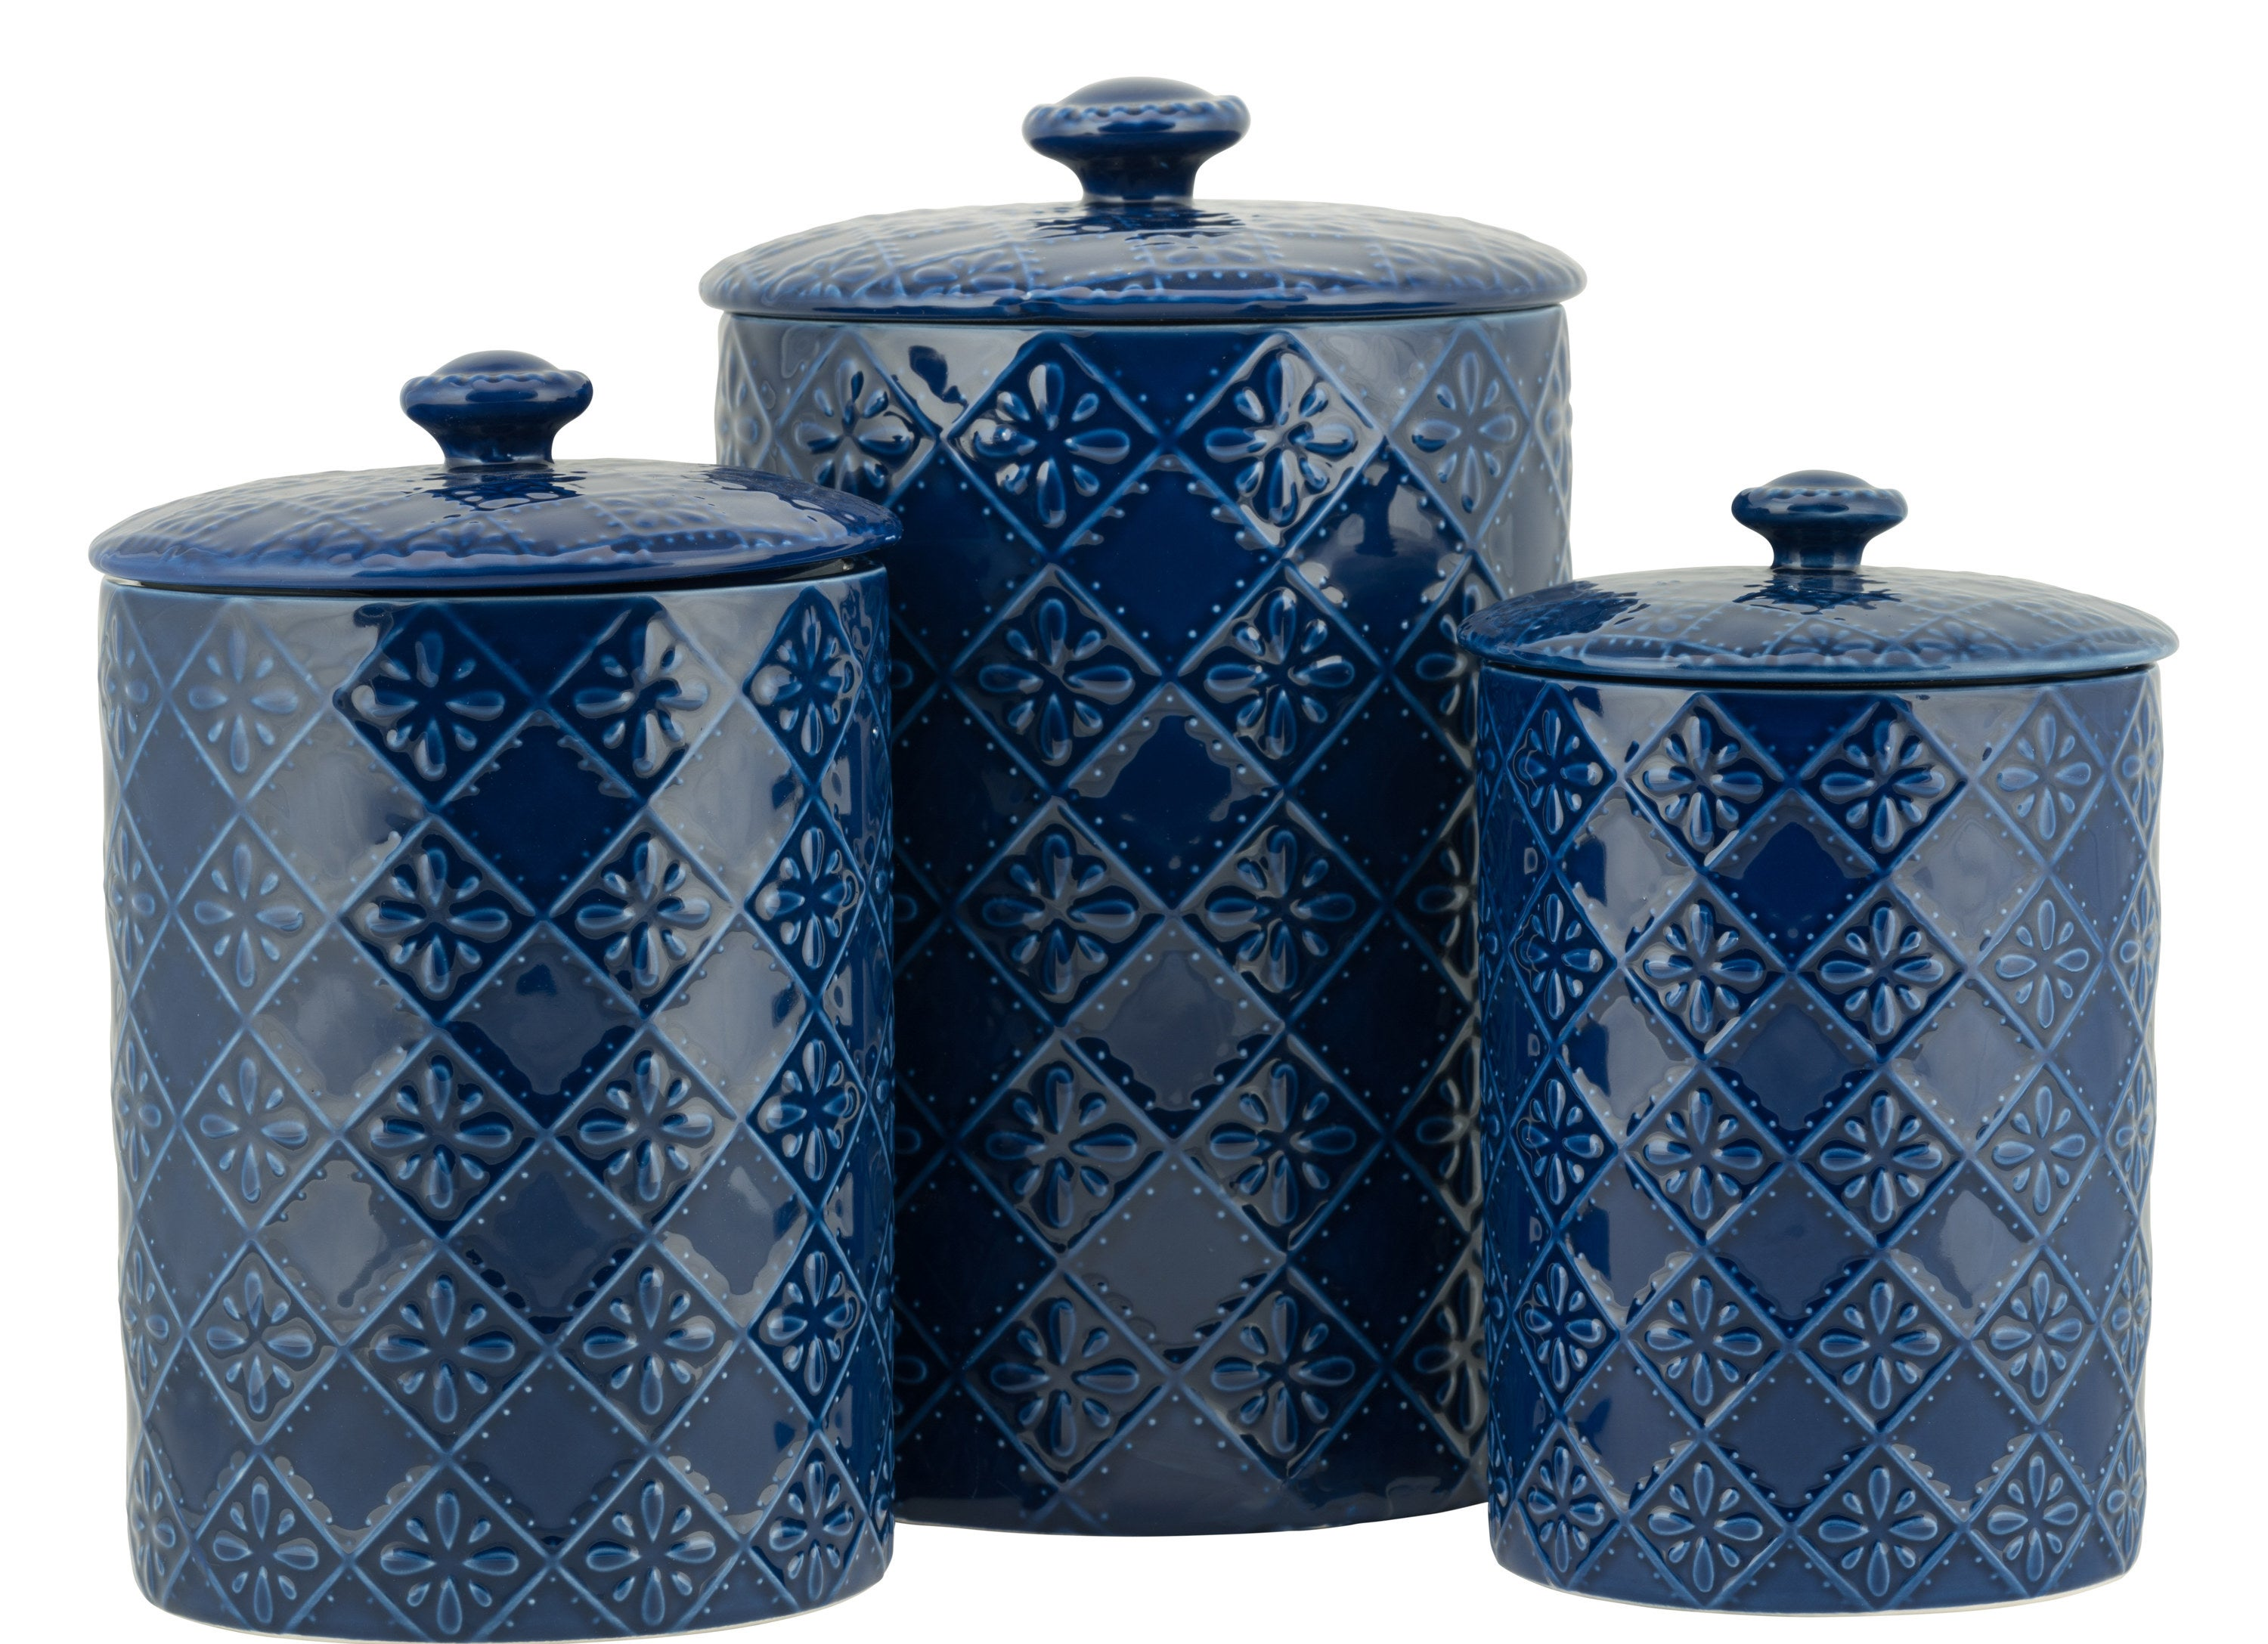 The three ceramic jars with floral design